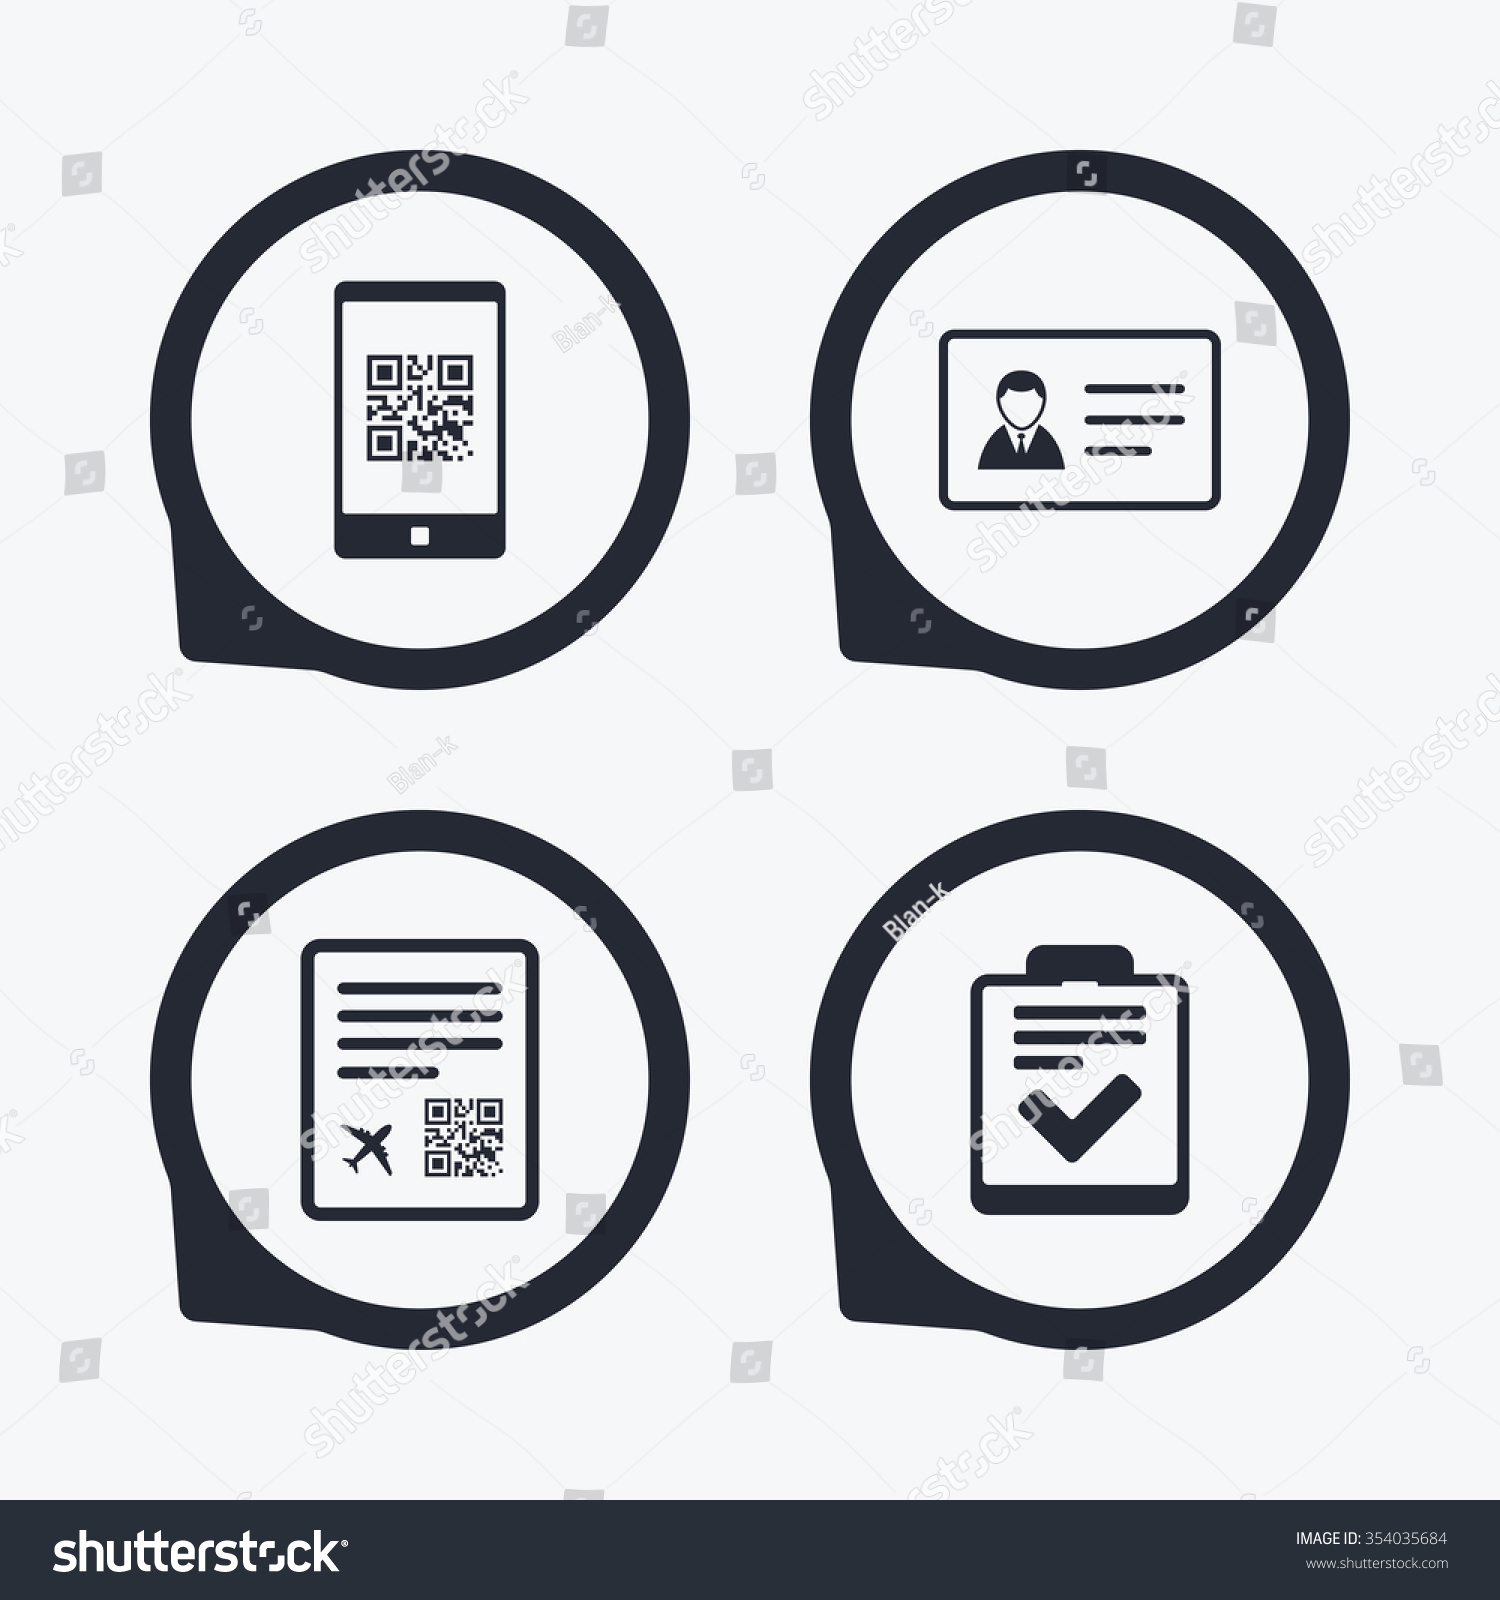 Qr Scan Code Smartphone Icon Boarding Stock Vector Hd Royalty Free